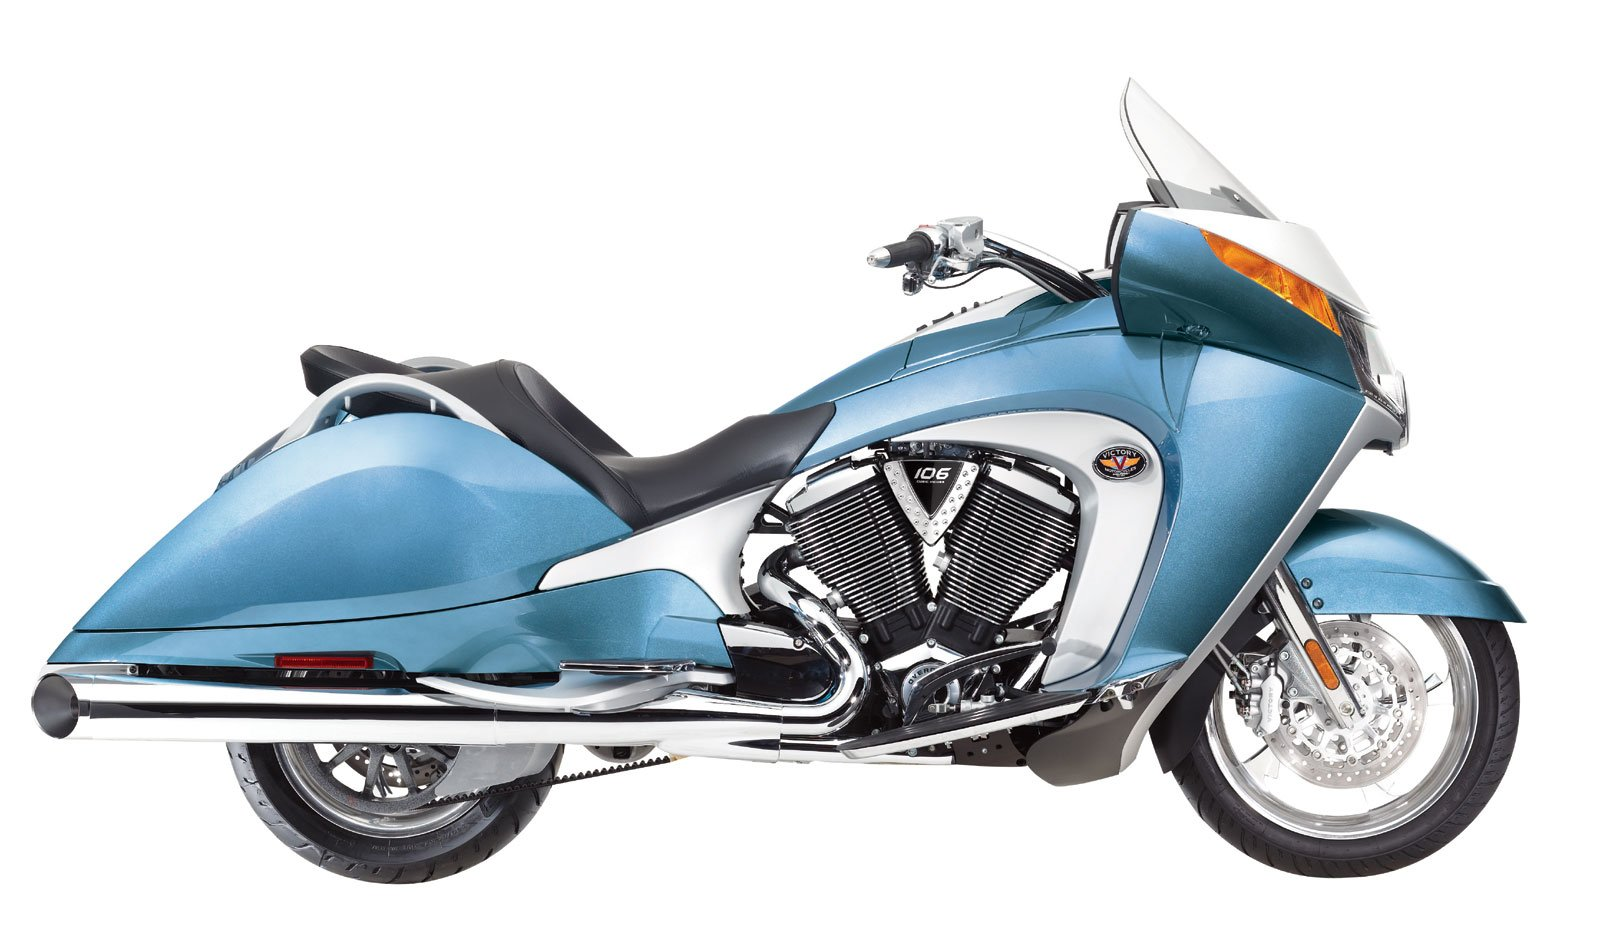 2009 Victory Vision Street Wallpapers 1600x935